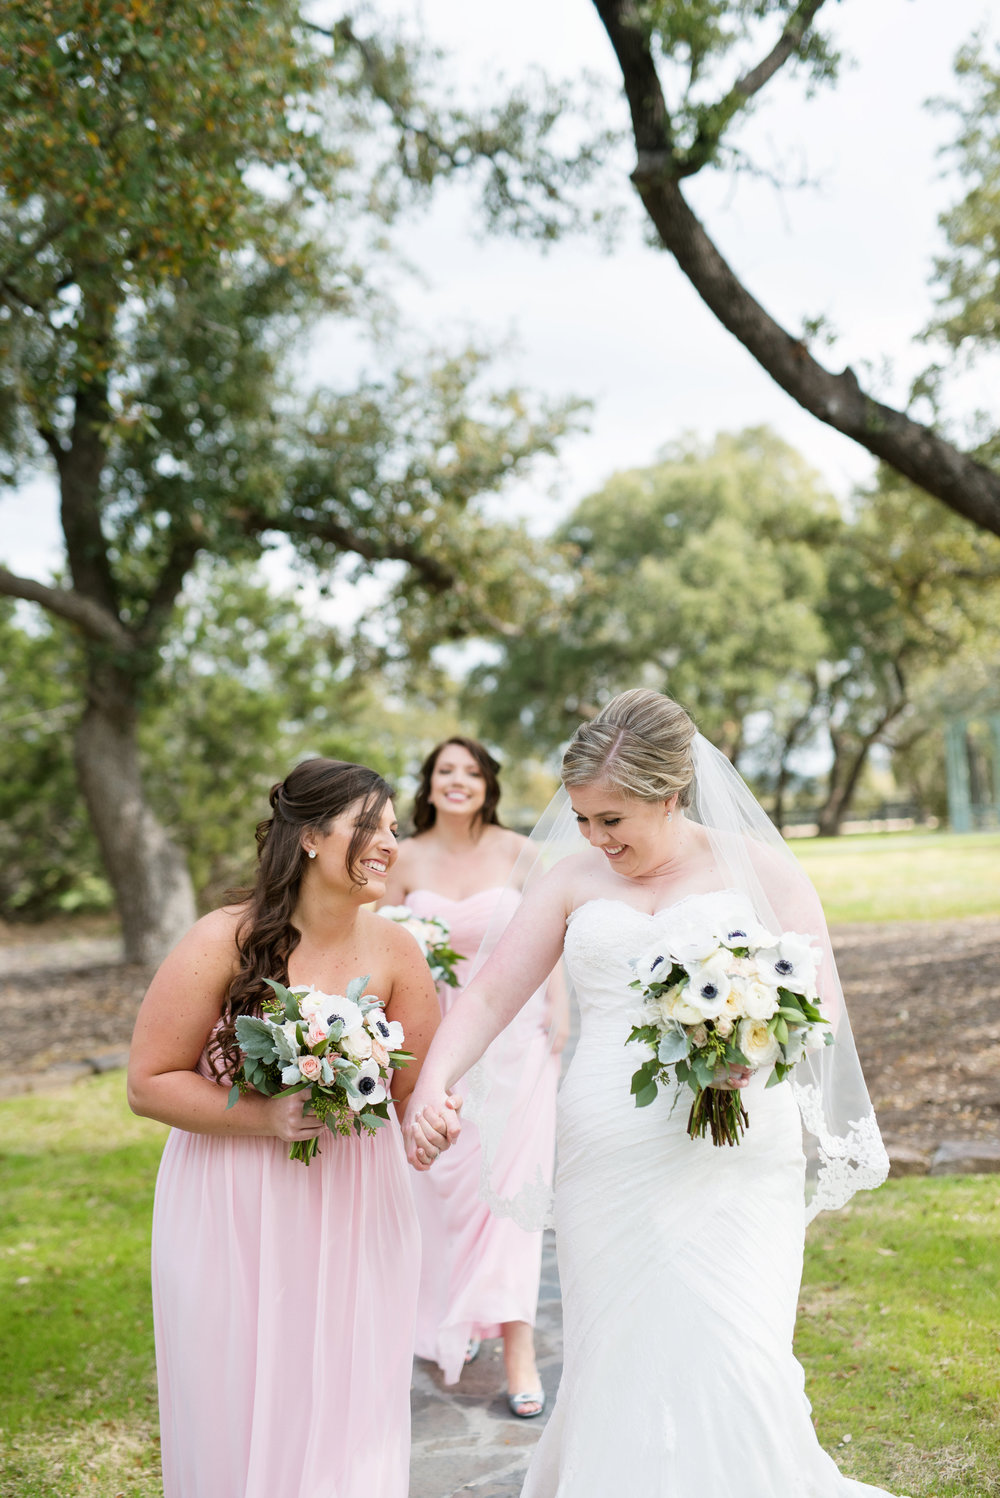 Ma Maison Austin Wedding Venue_ Austin Wedding Planner Heavenly Day Events _ Kristi Wright Austin Wedding Photographer20160306_0118.JPG